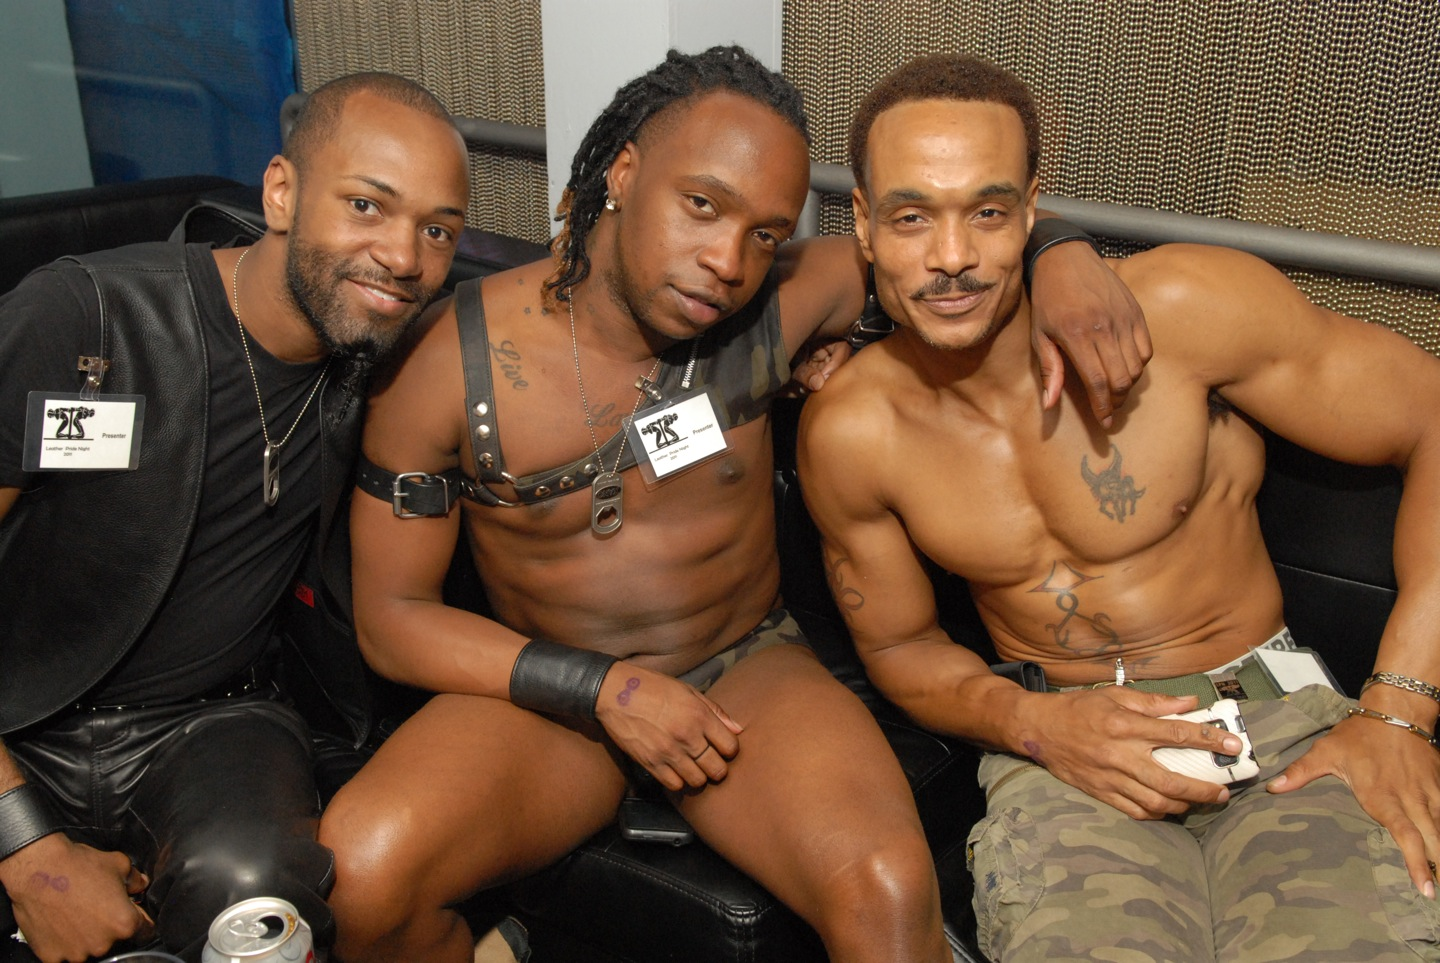 woof times three Three Days to Leather Pride (photo countdown)